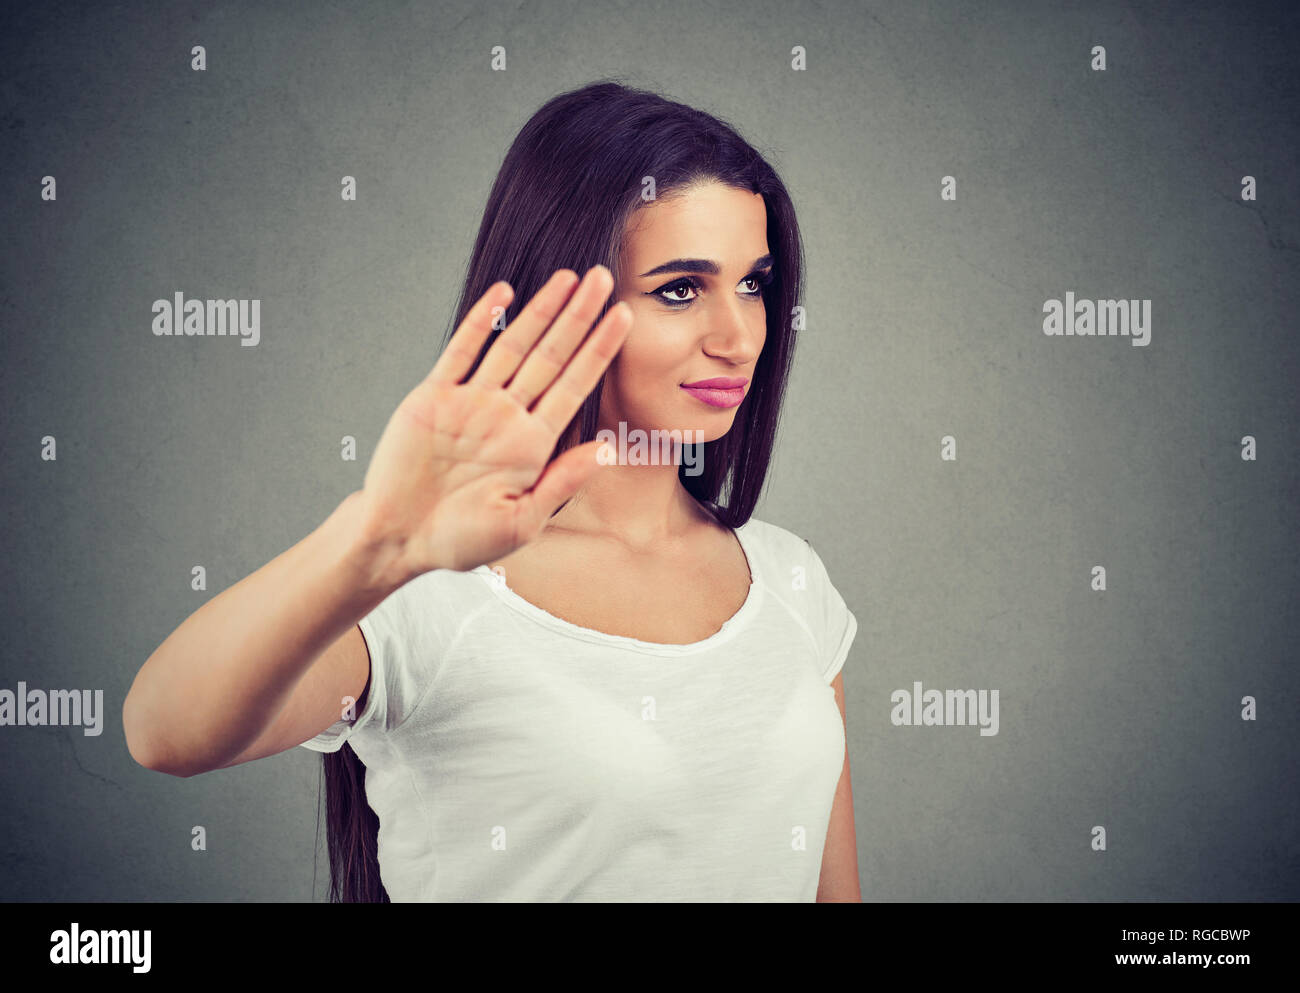 Portrait of an angry woman with bad attitude giving talk to hand gesture with palm outward isolated on gray background. Negative emotion face expressi - Stock Image